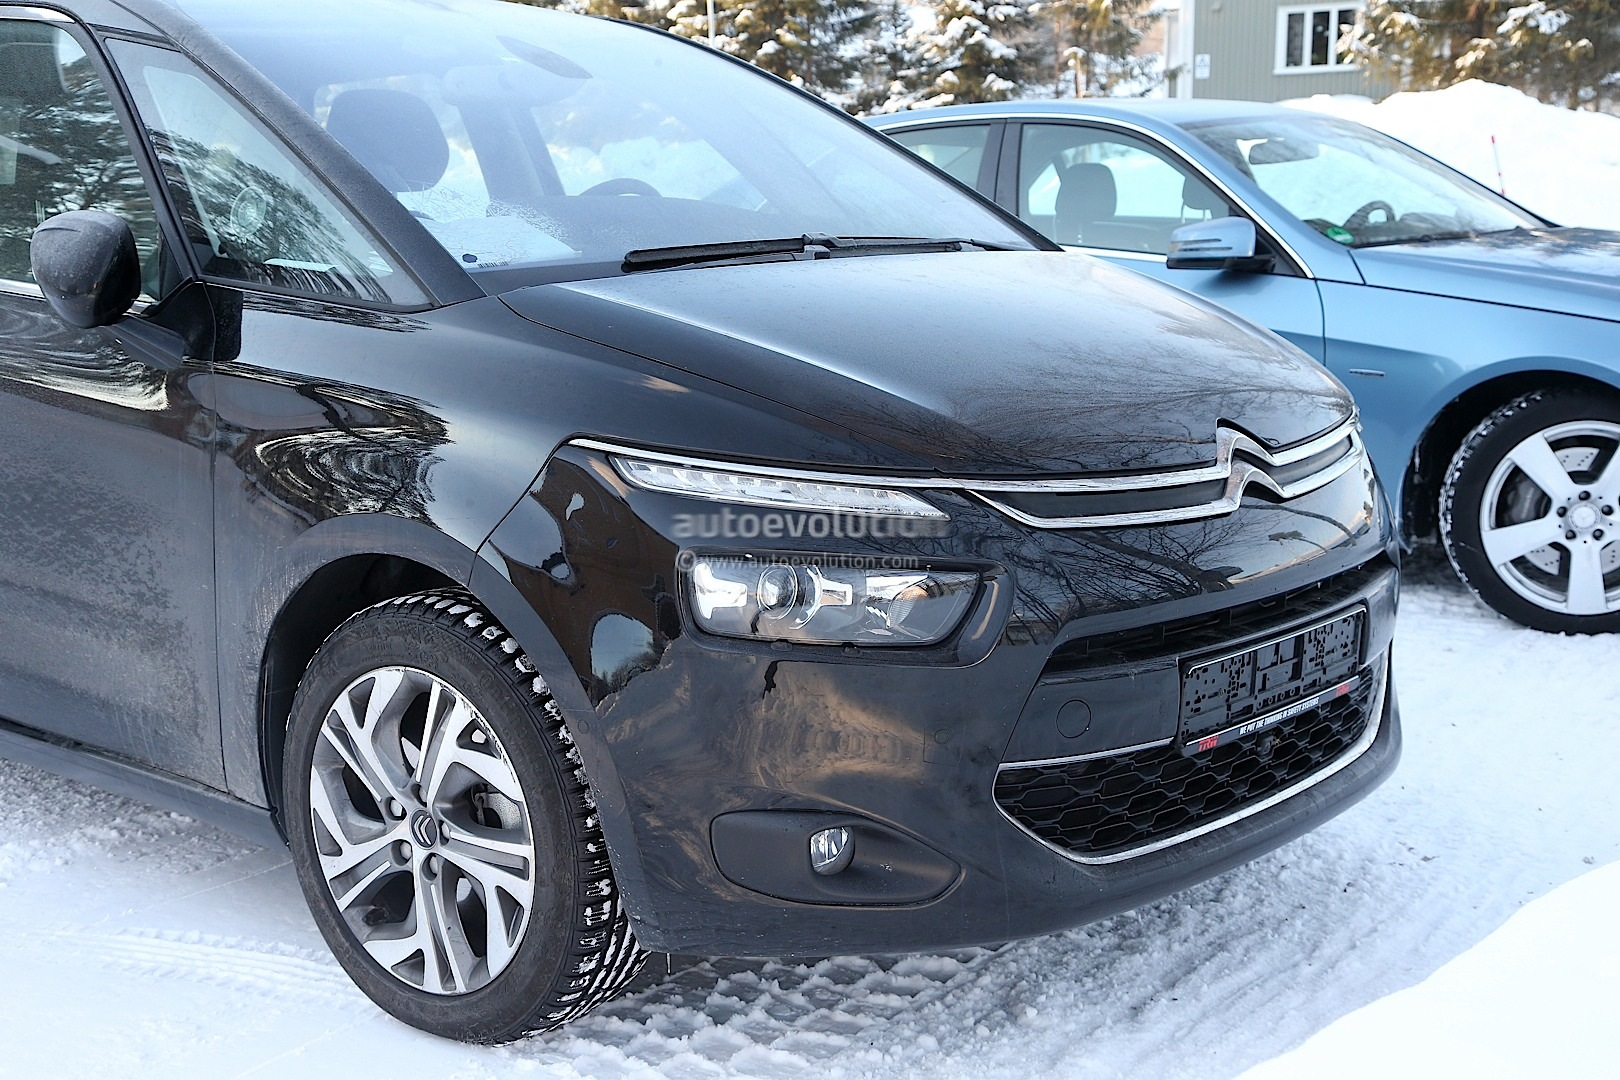 spyshots 2014 citroen c4 picasso interior revealed. Black Bedroom Furniture Sets. Home Design Ideas